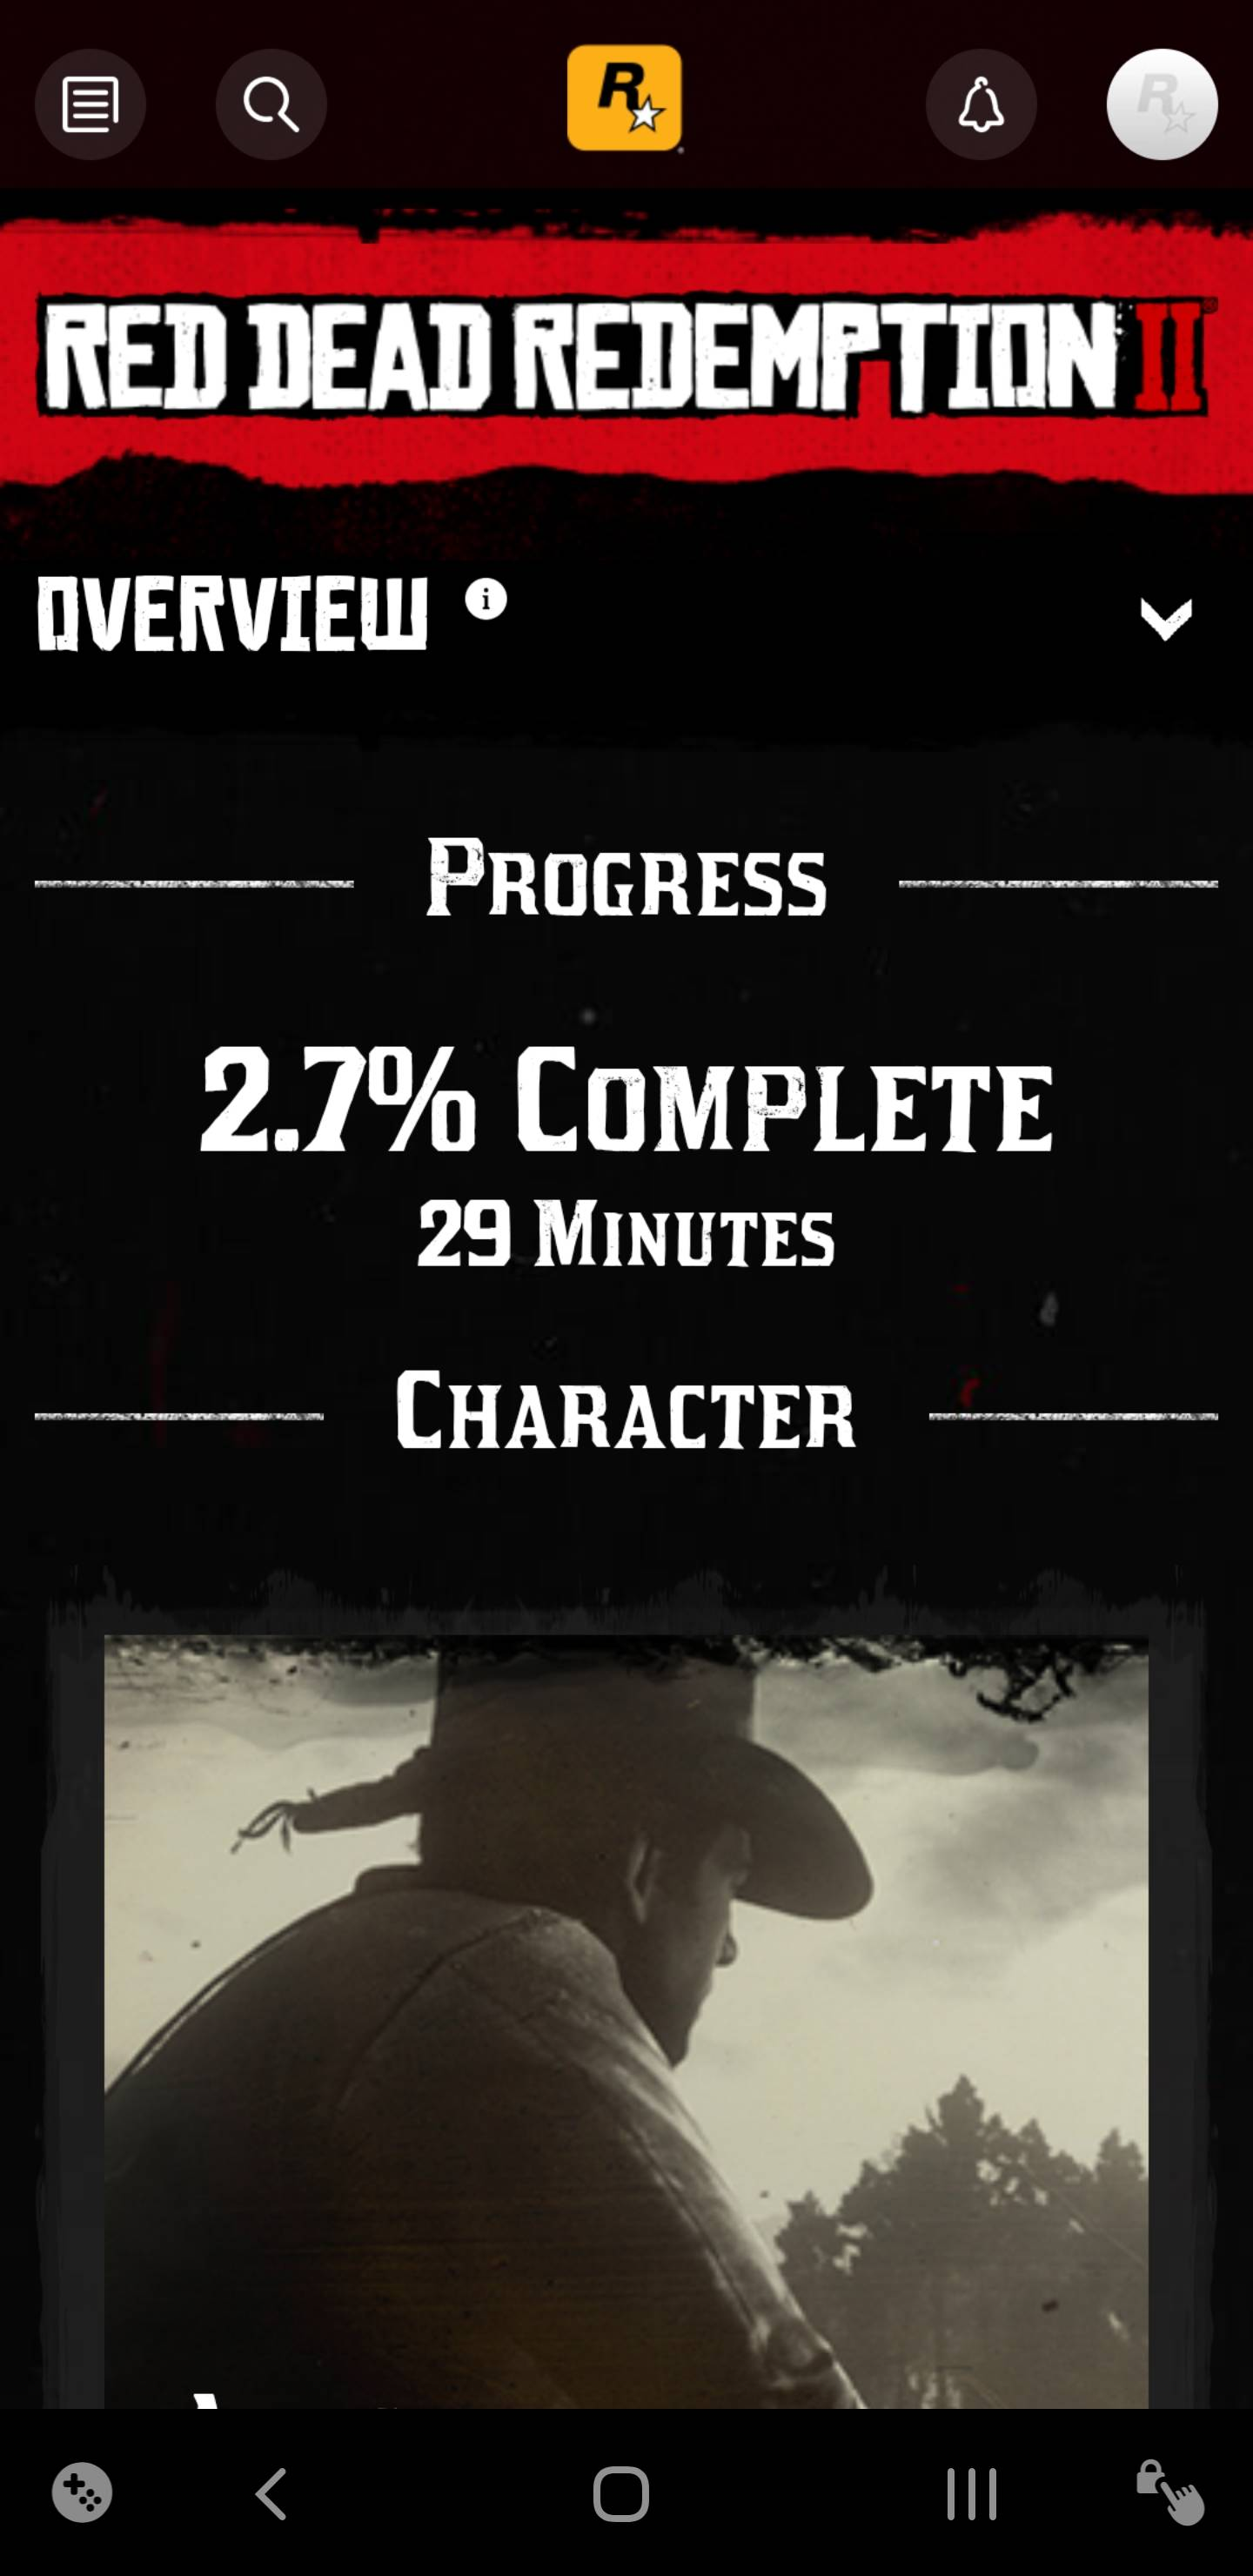 How can I tell what my total playtime is? - Red Dead Redemption 2